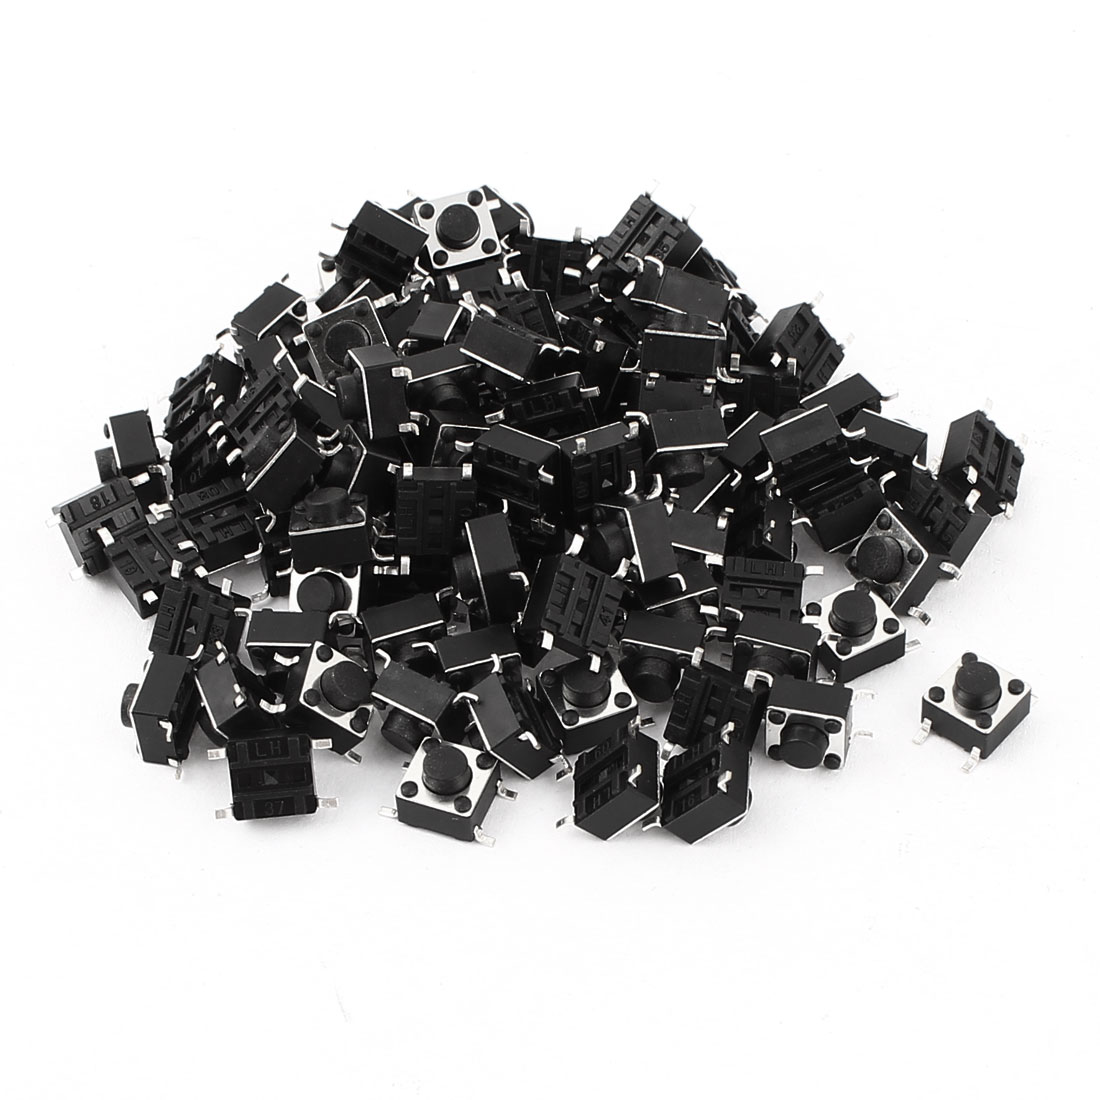 100 Pcs SMD 4 Pins Push Button Momentary Tactile Switch 6x6x5mm